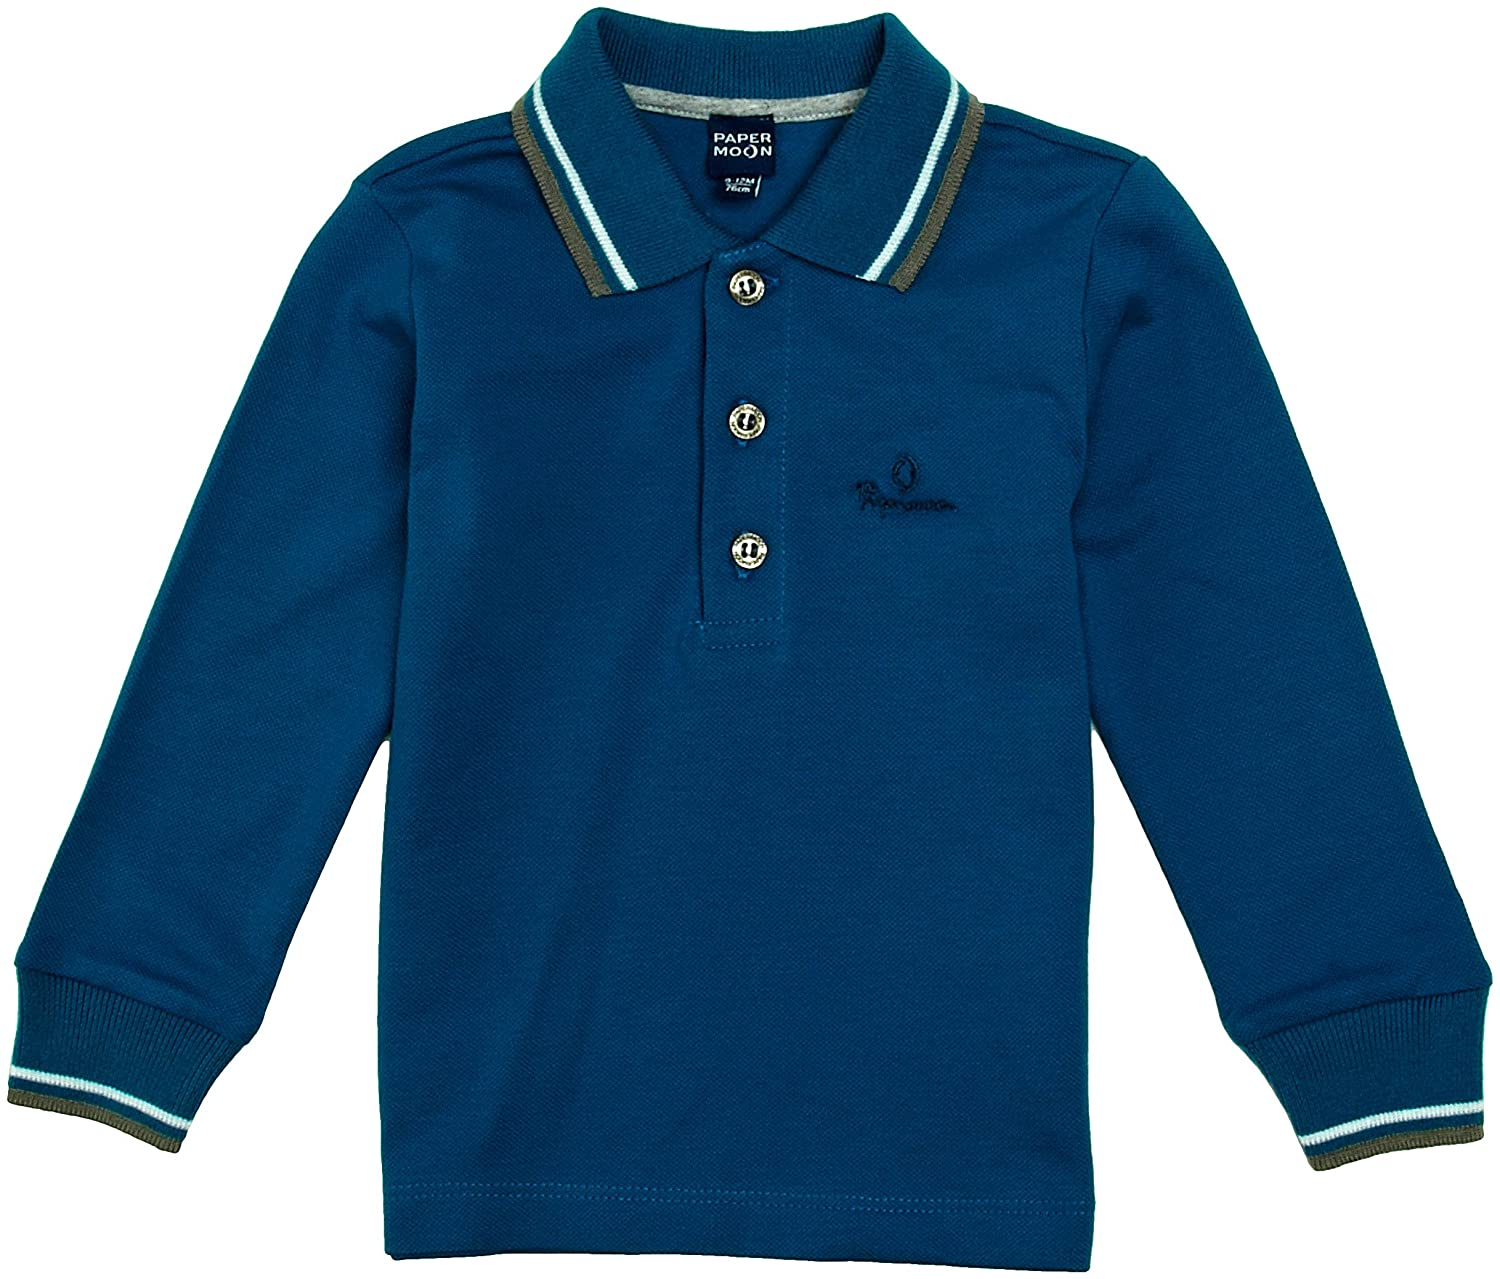 Papermoon Baby Boy's Long Sleeve Casual Polo Shirt 9PM61290/00749/267/1-3